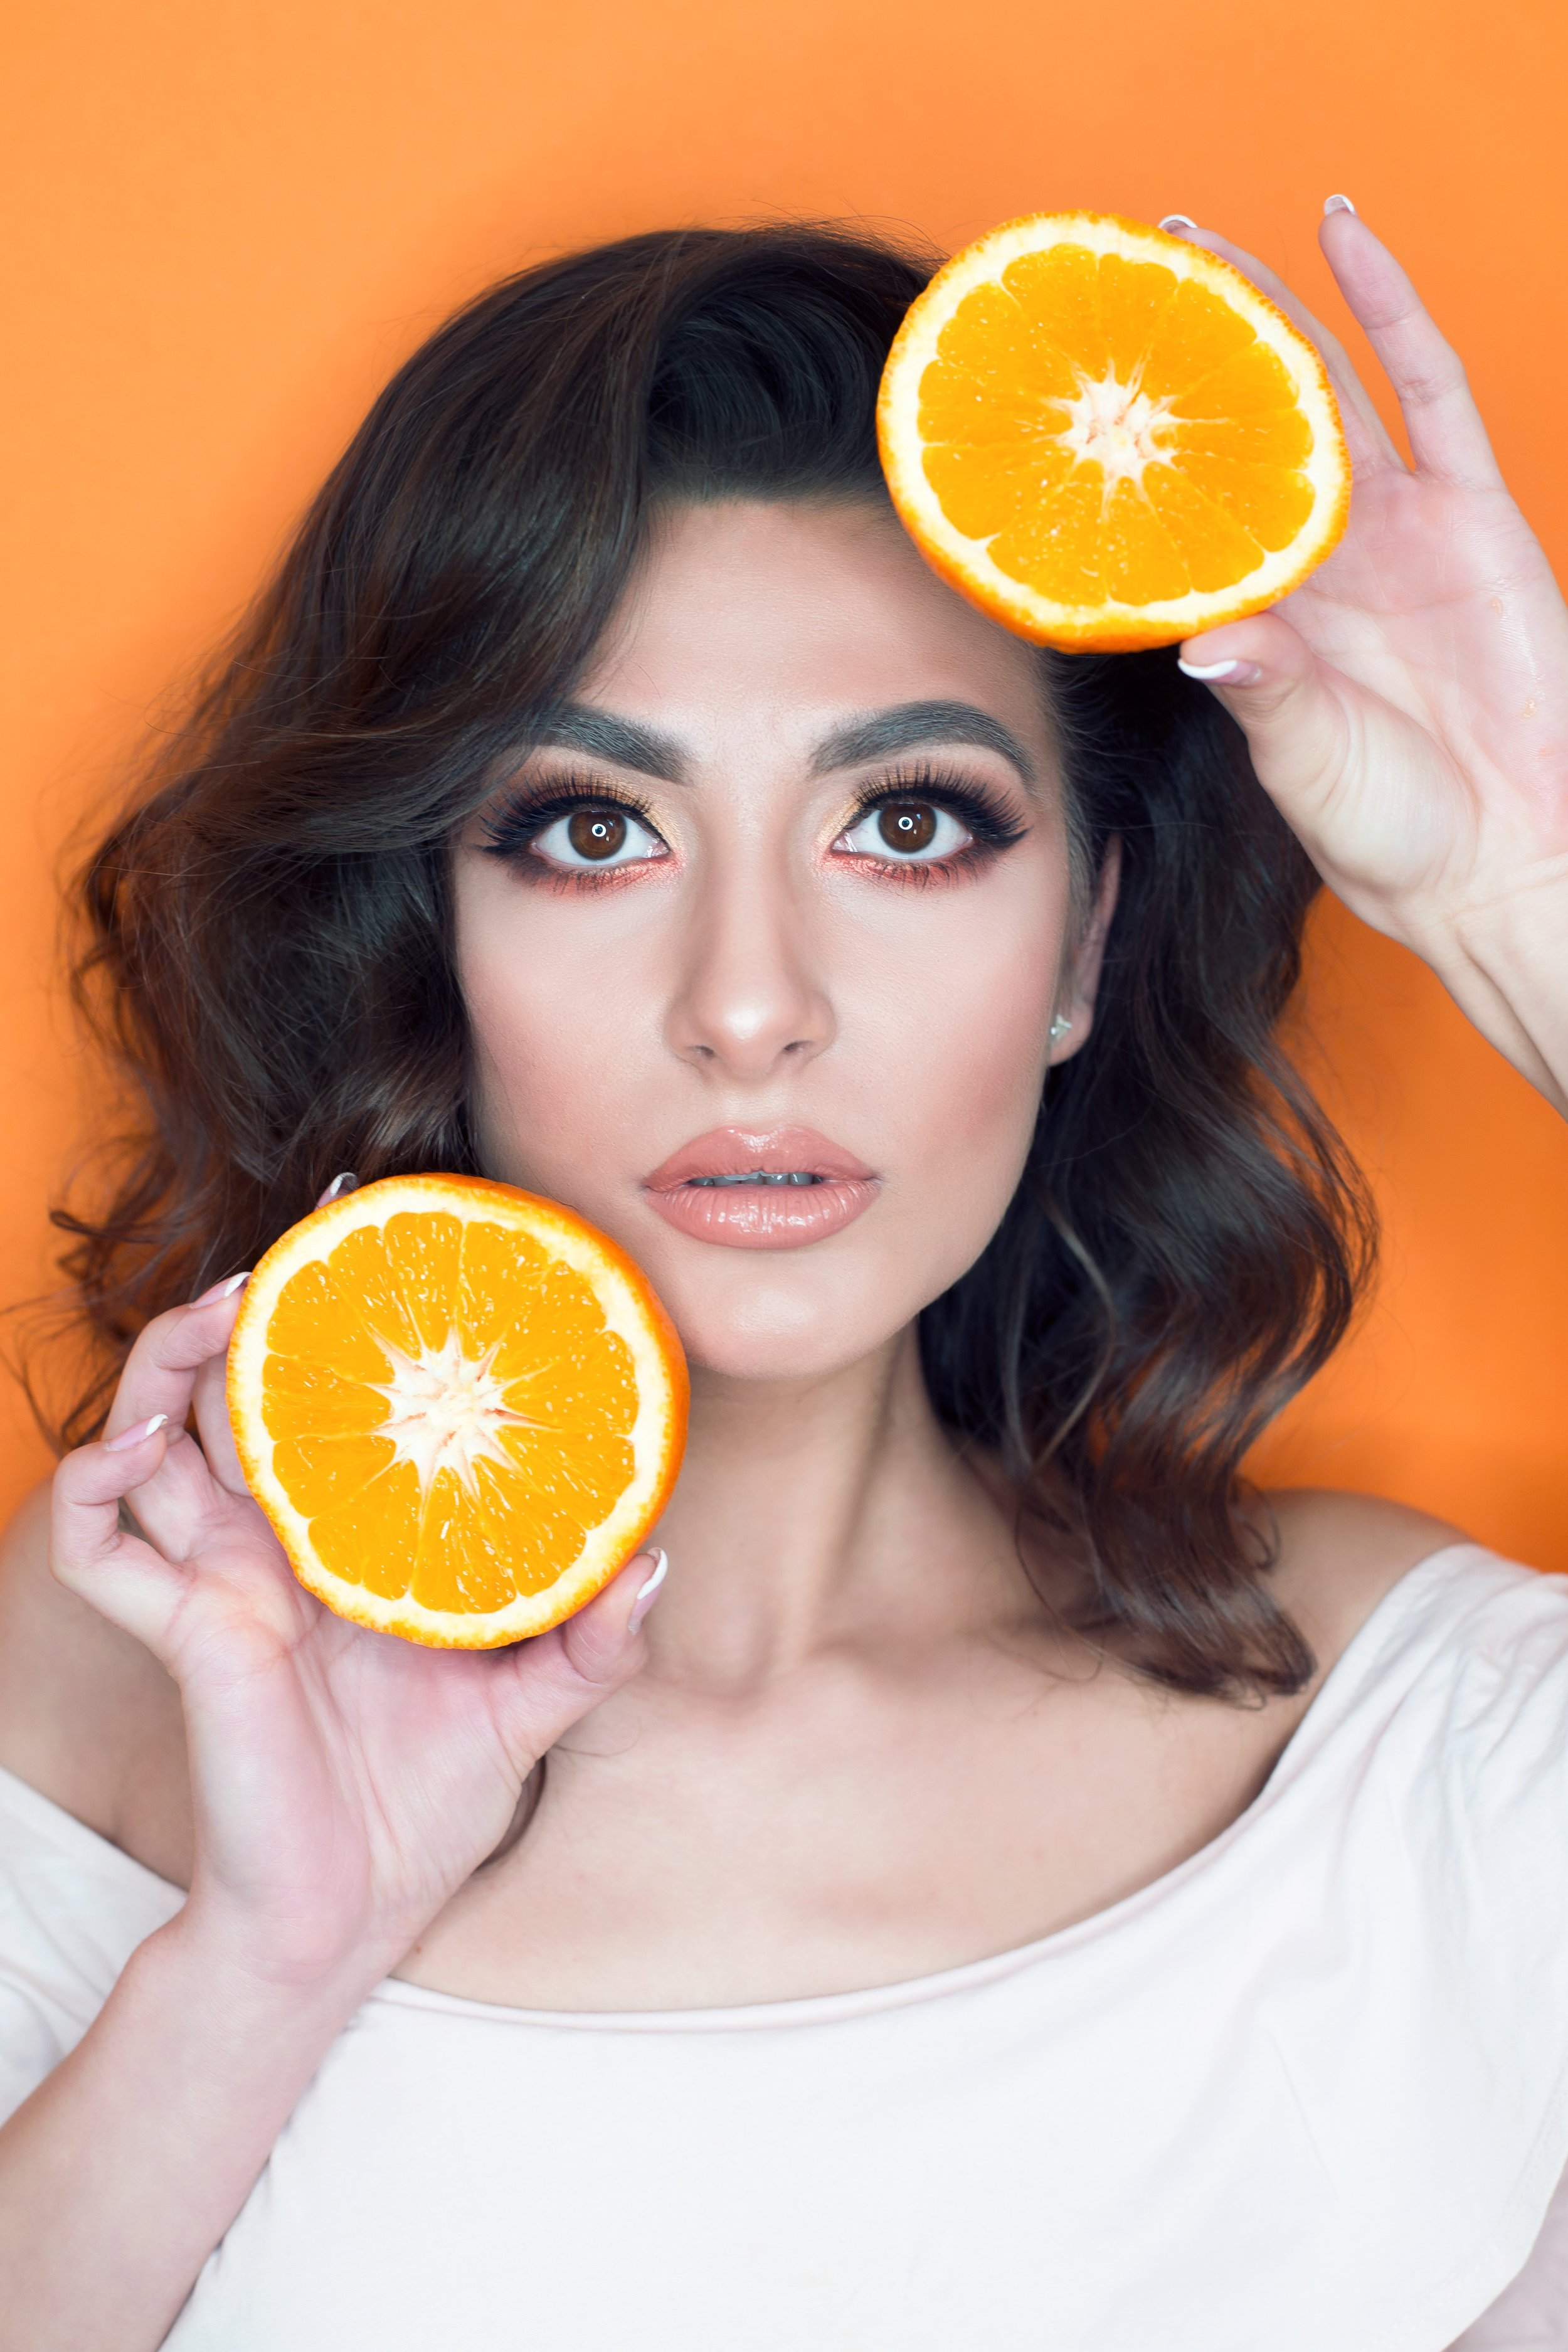 vitamin c as a skin care product helps with collagen production